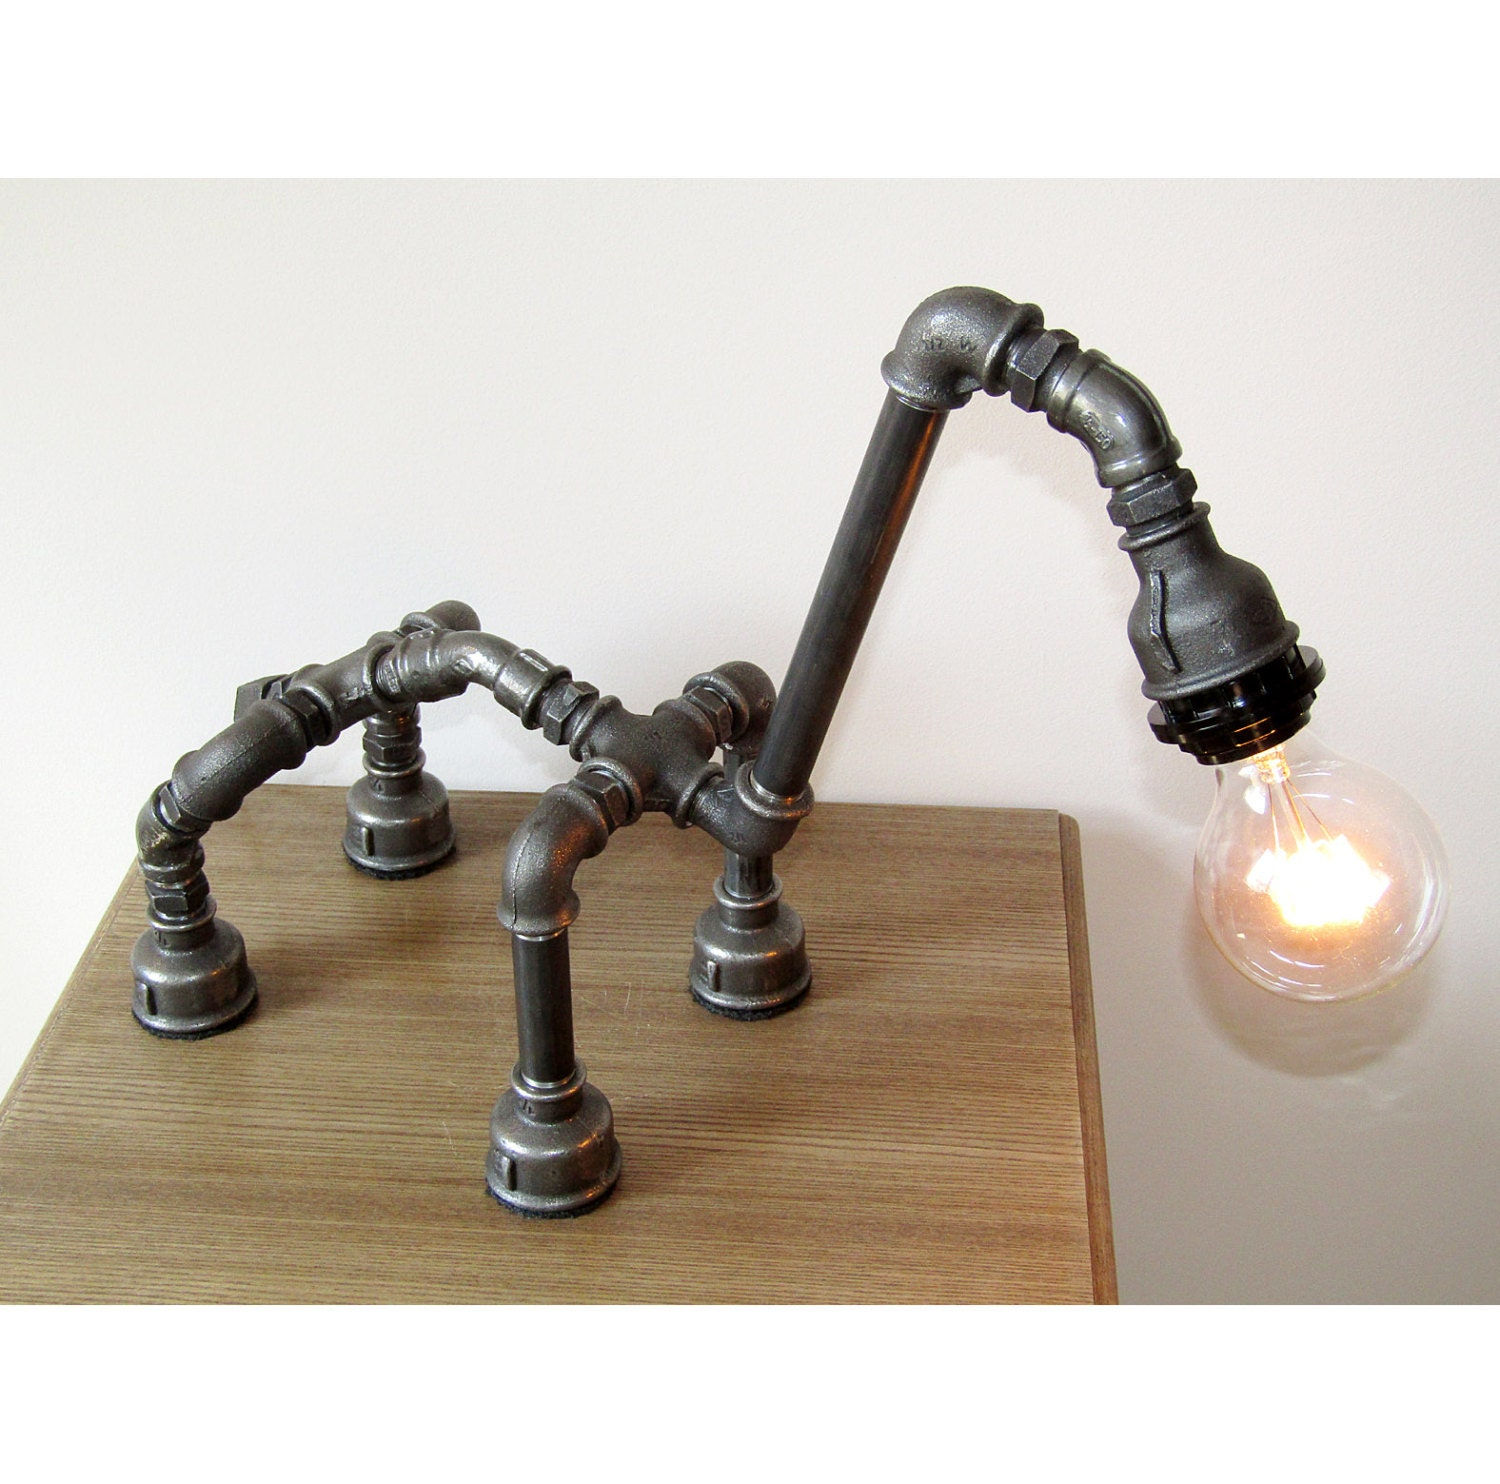 Robot camel table lamp pipe lamp iron pipe lamp for Industrial pipe light socket